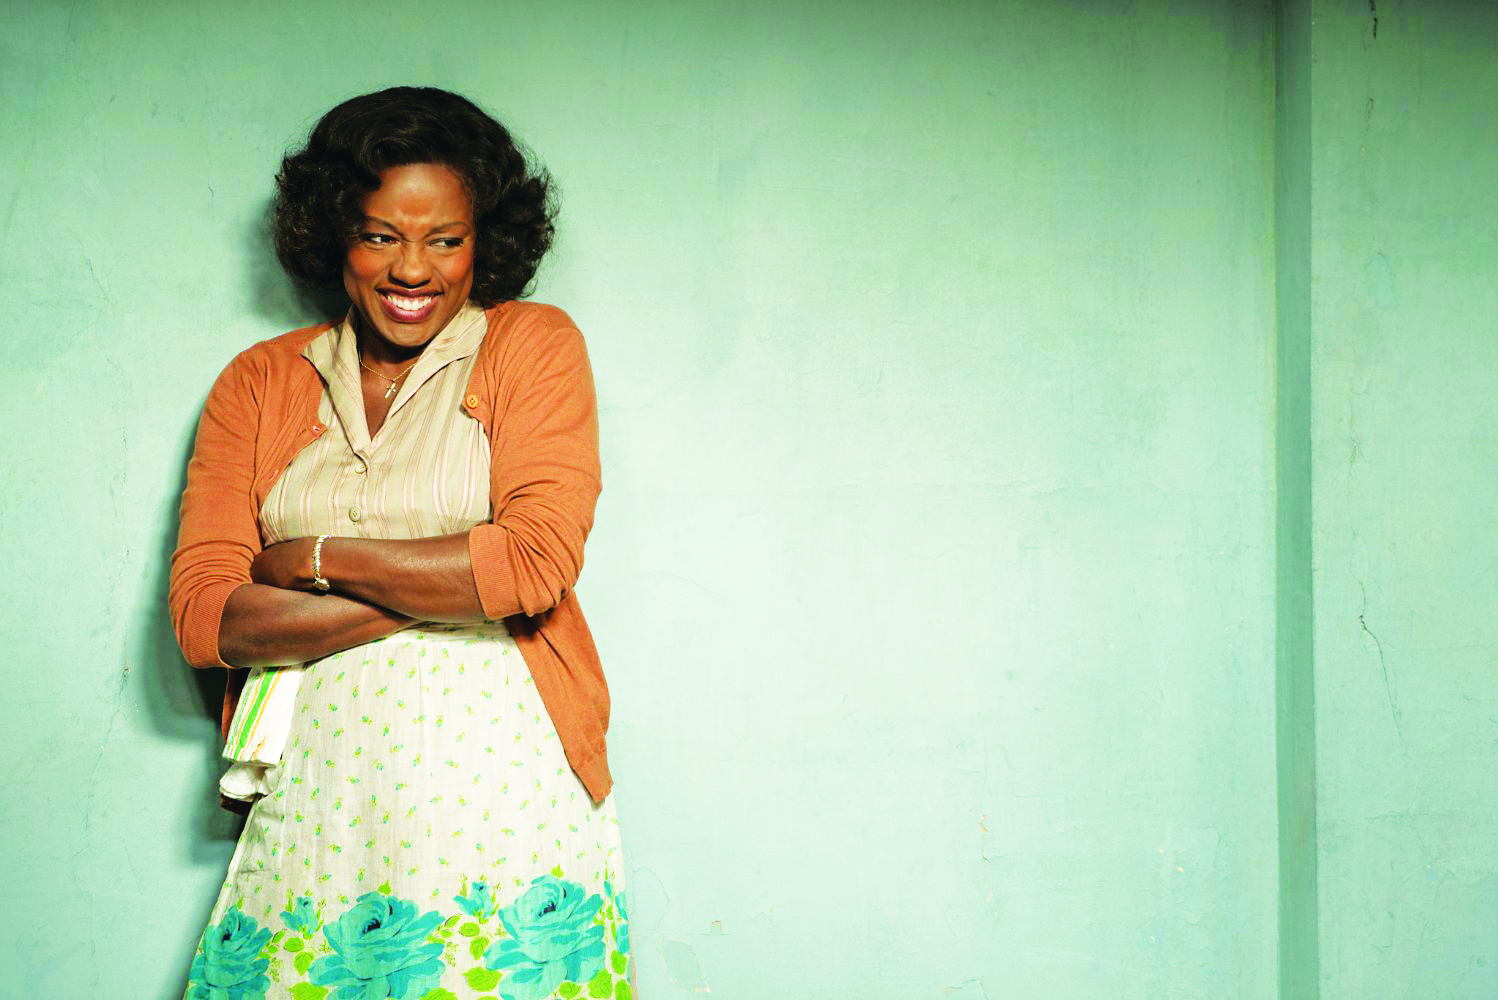 pacific sun author at pacific sun marin county california viola davis has been nominated for best supporting actress for her role in fences an wilson play that was adapted for the big screen